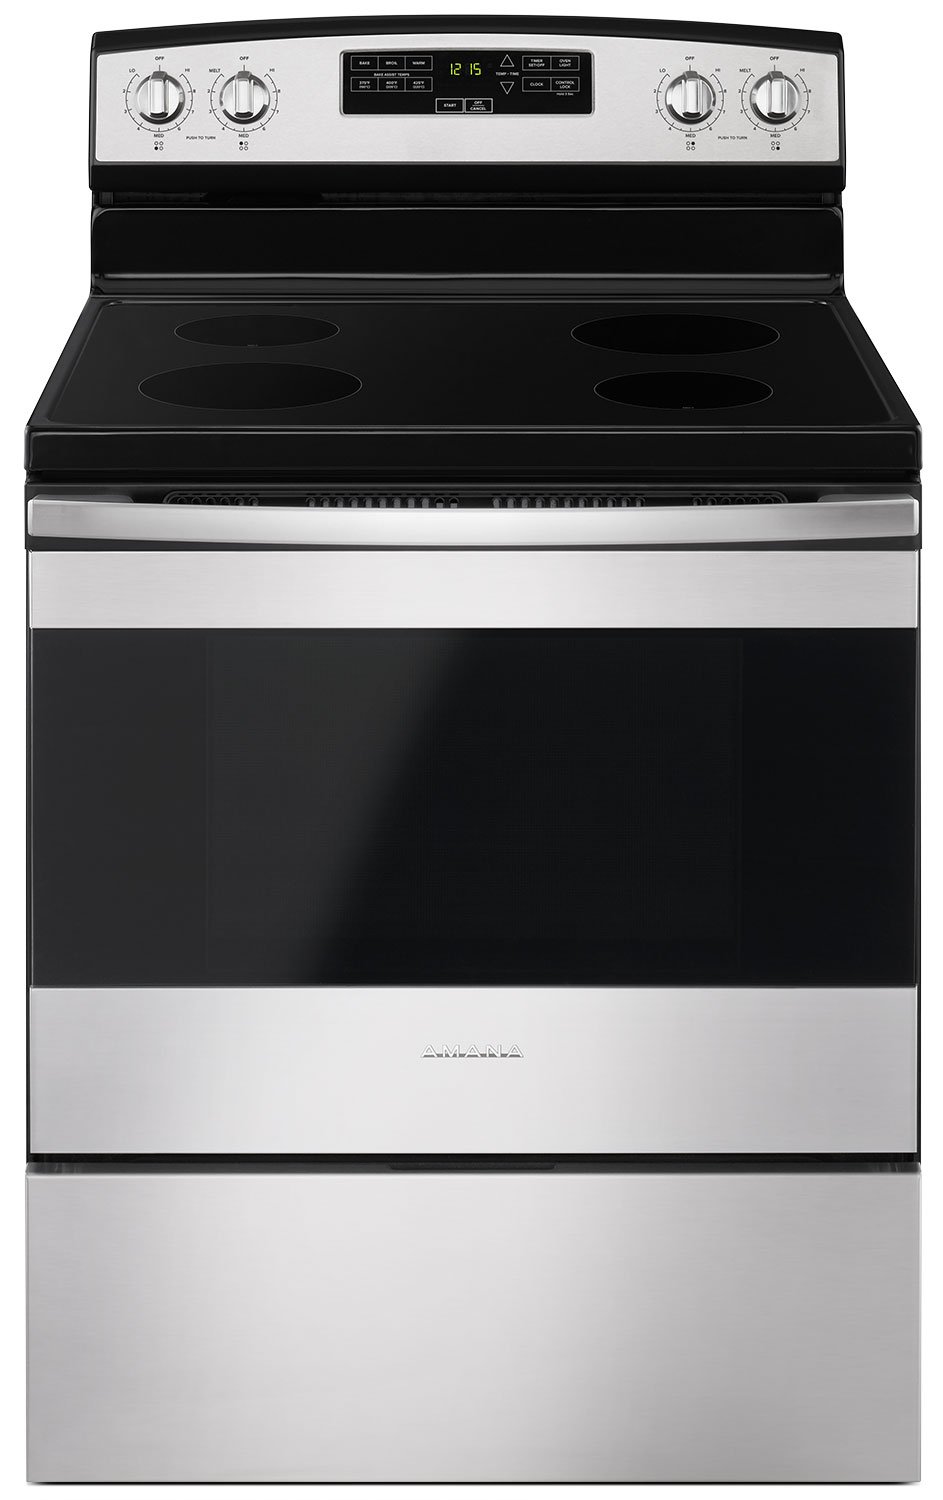 Amana 4.8 Cu. Ft. Freestanding Electric Range – YAER6303MFS